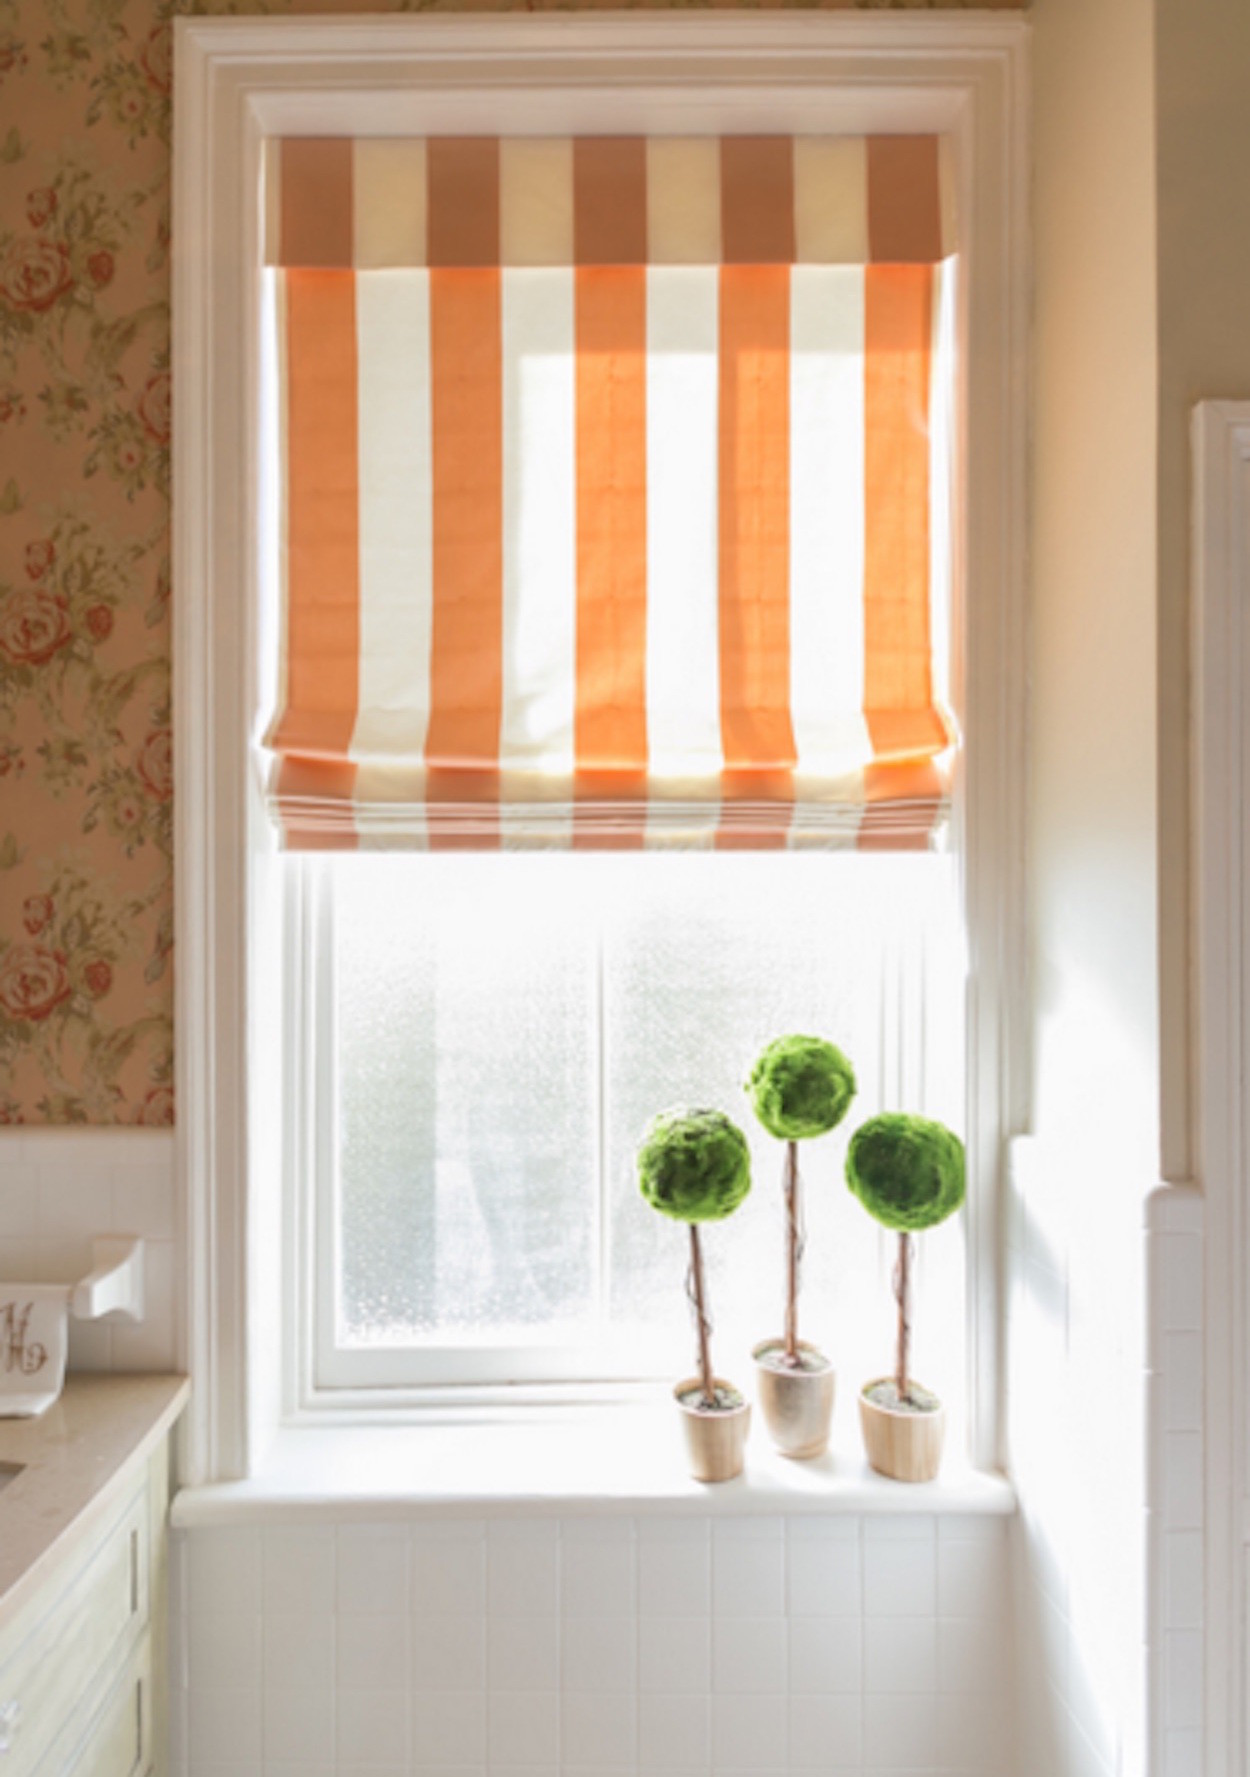 7 Different Bathroom Window Treatments You Might Not Have Thought Of | Martha Stewart & 7 Different Bathroom Window Treatments You Might Not Have Thought Of ...